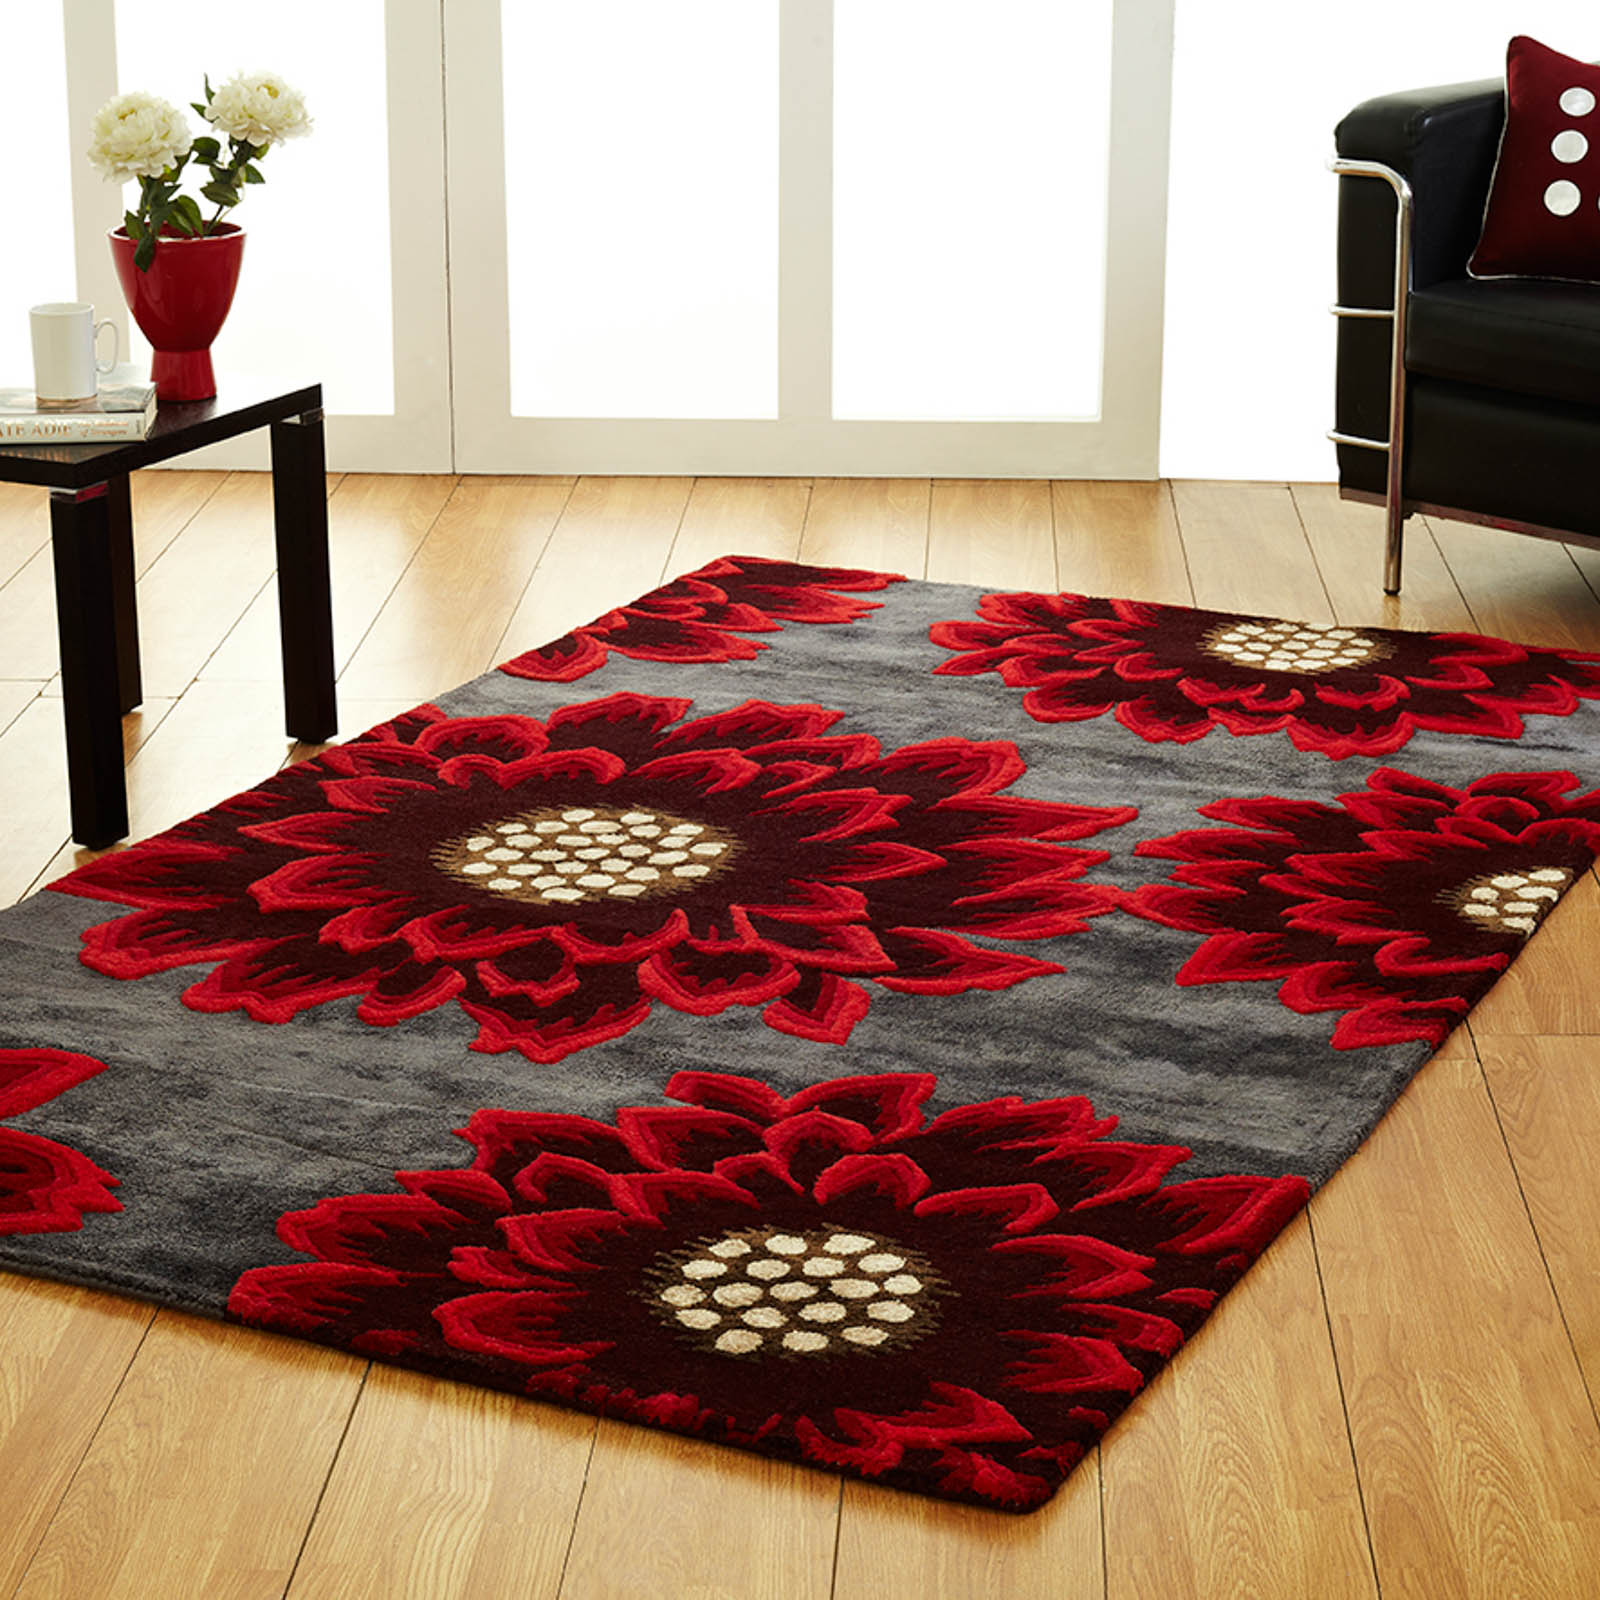 Unique Poppy Rugs In Grey Red Free Uk Delivery The Rug